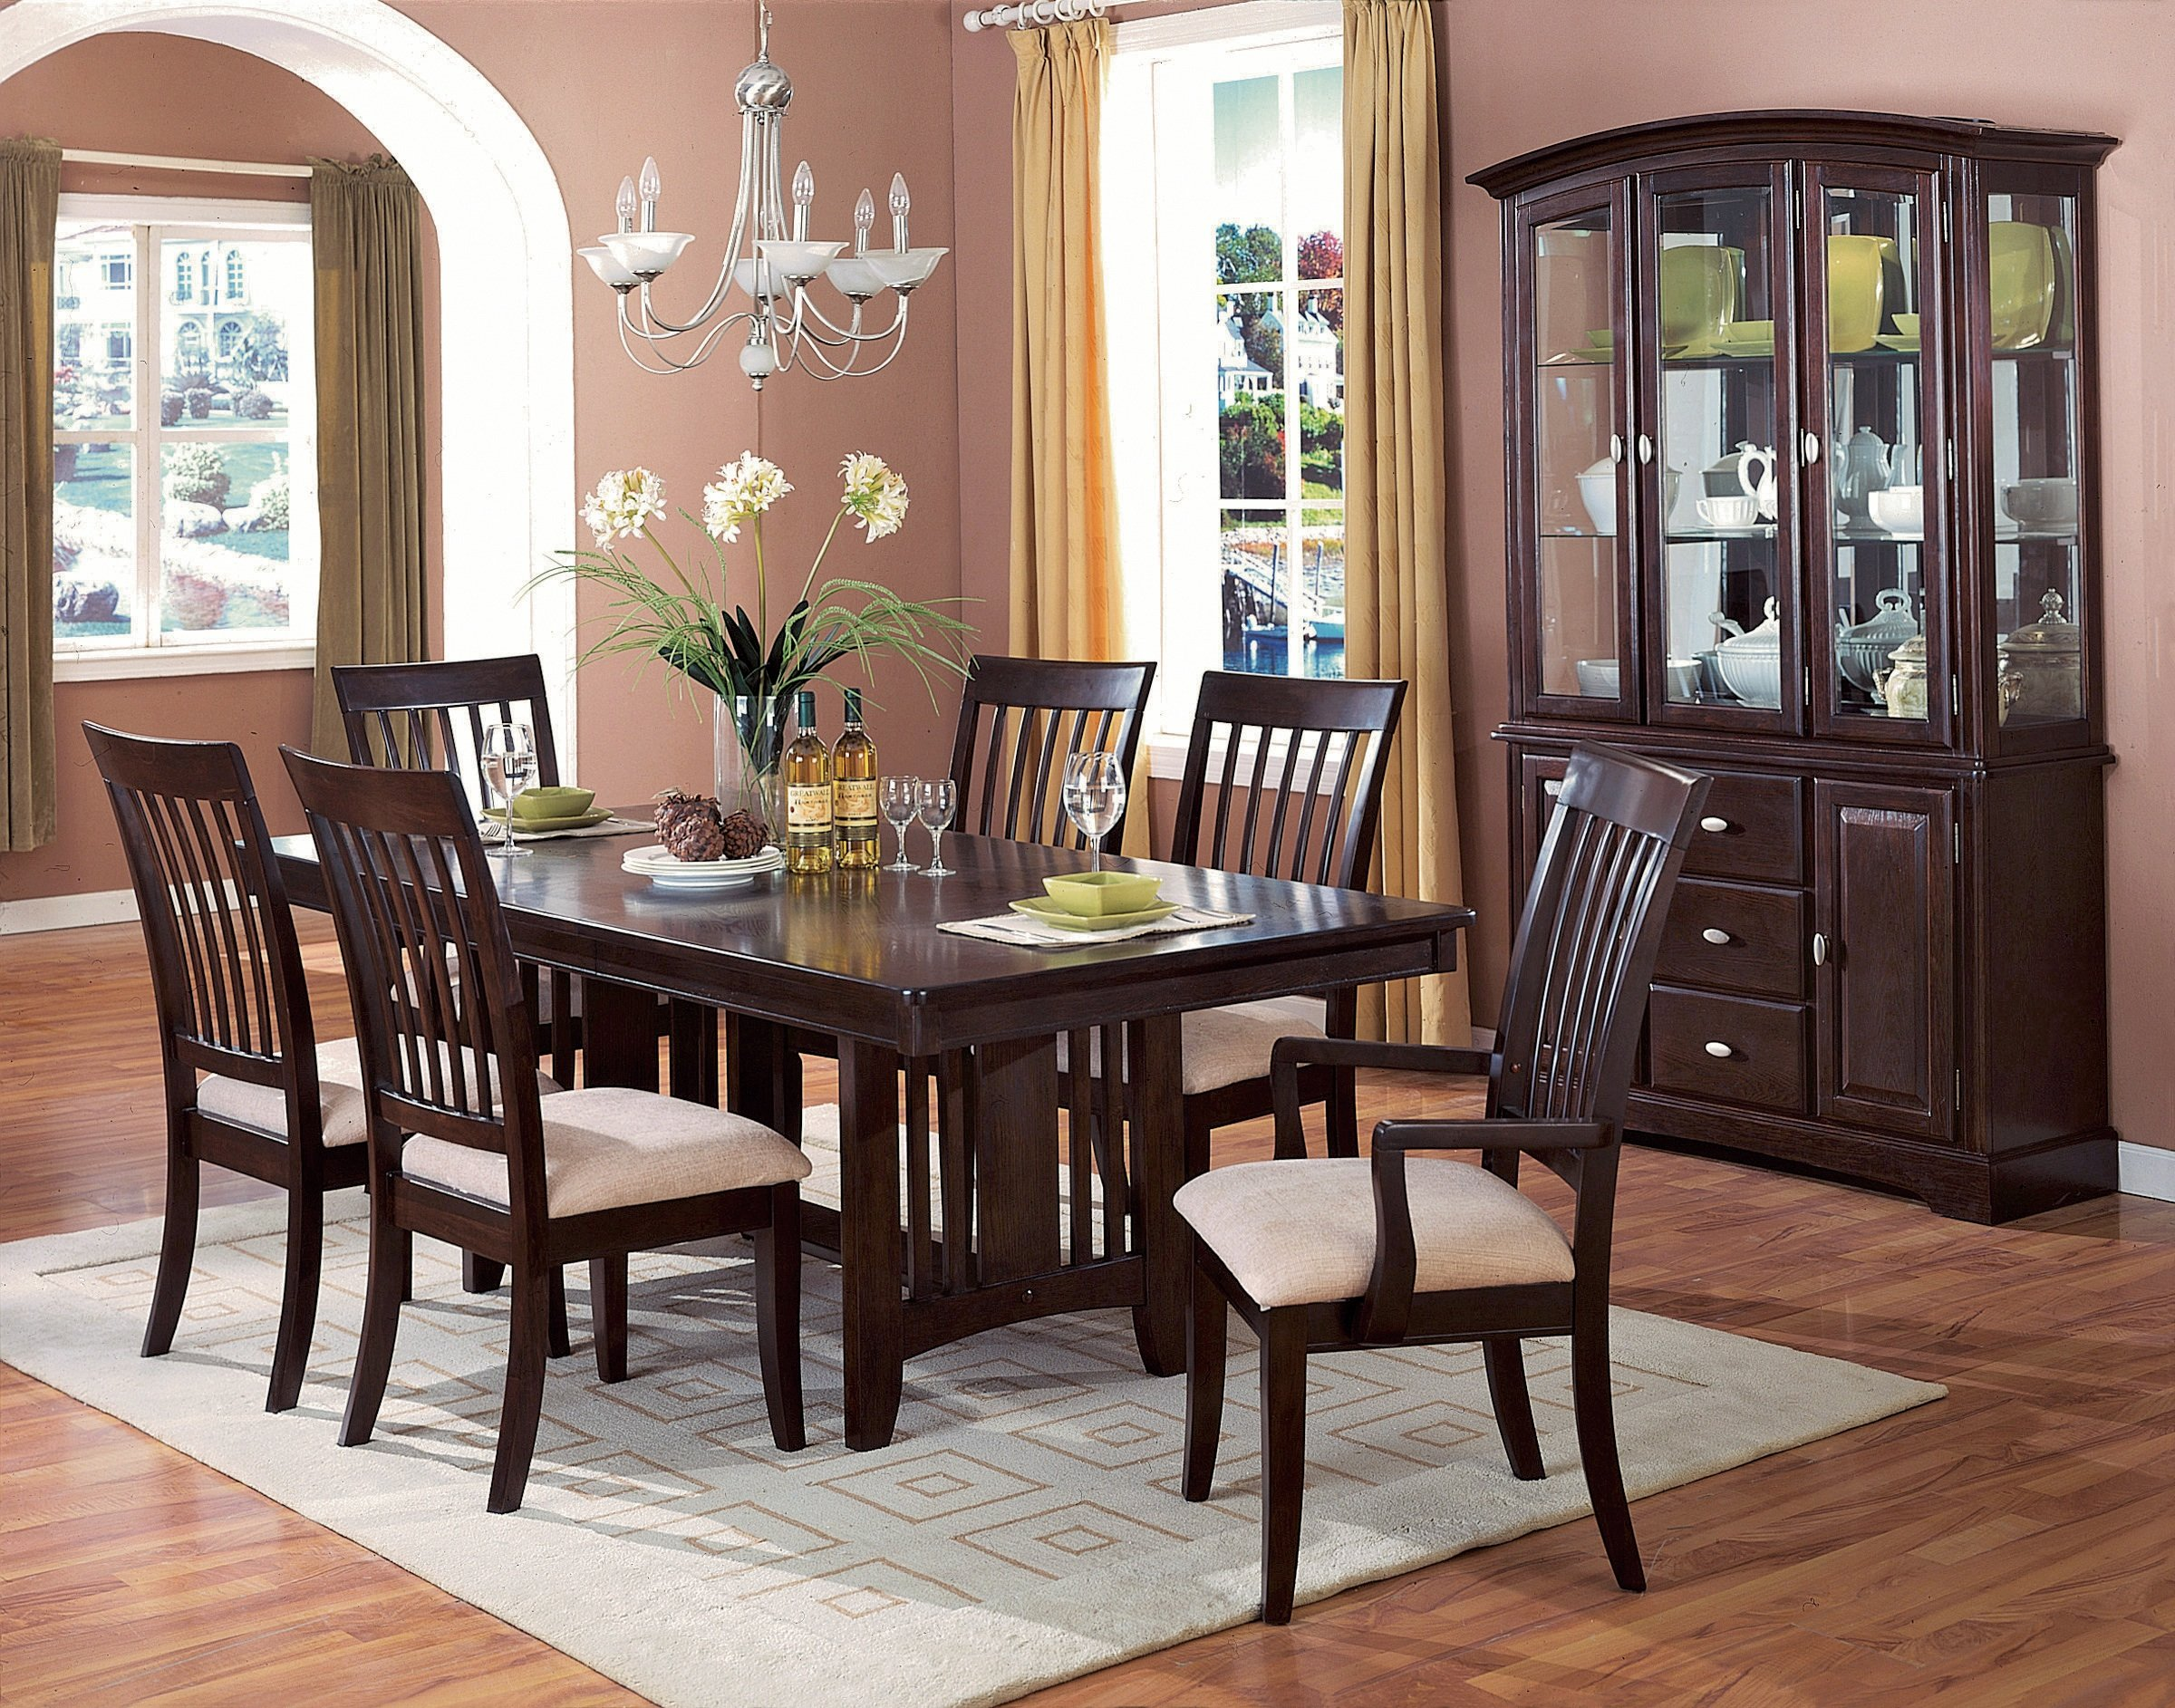 dining room images full hd pictures